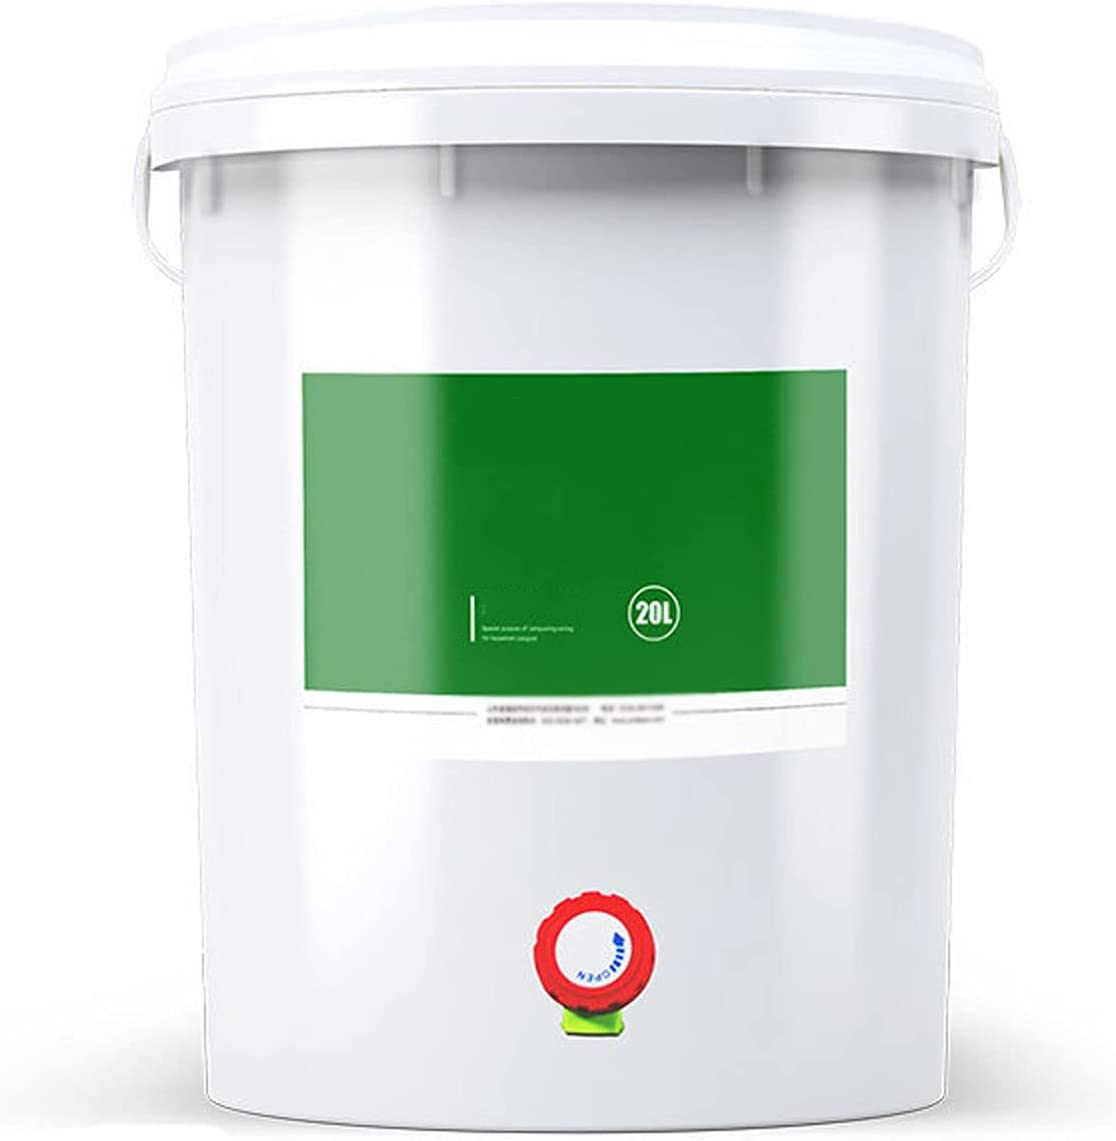 New Free Shipping Waste Bins Kitchen Max 81% OFF Compost Bin Composter Outdoor Buc Indoor and